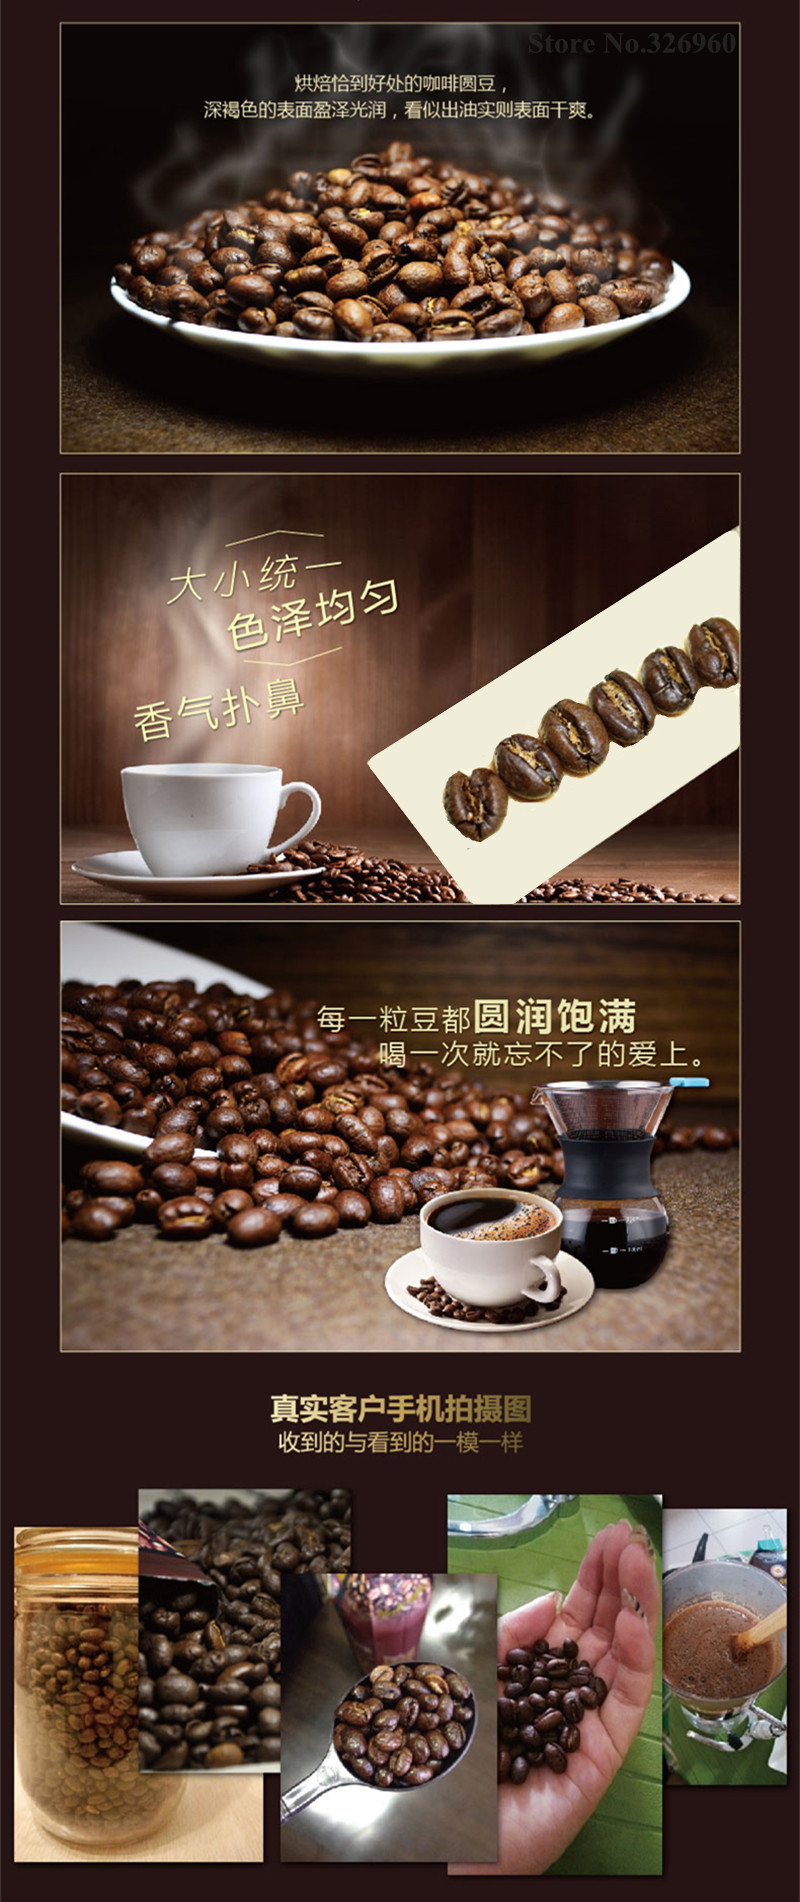 C-TS047 High-quality Vietnam 500g Coffee Beans Baking charcoal roasted Original green food slimming coffee lose weight tea